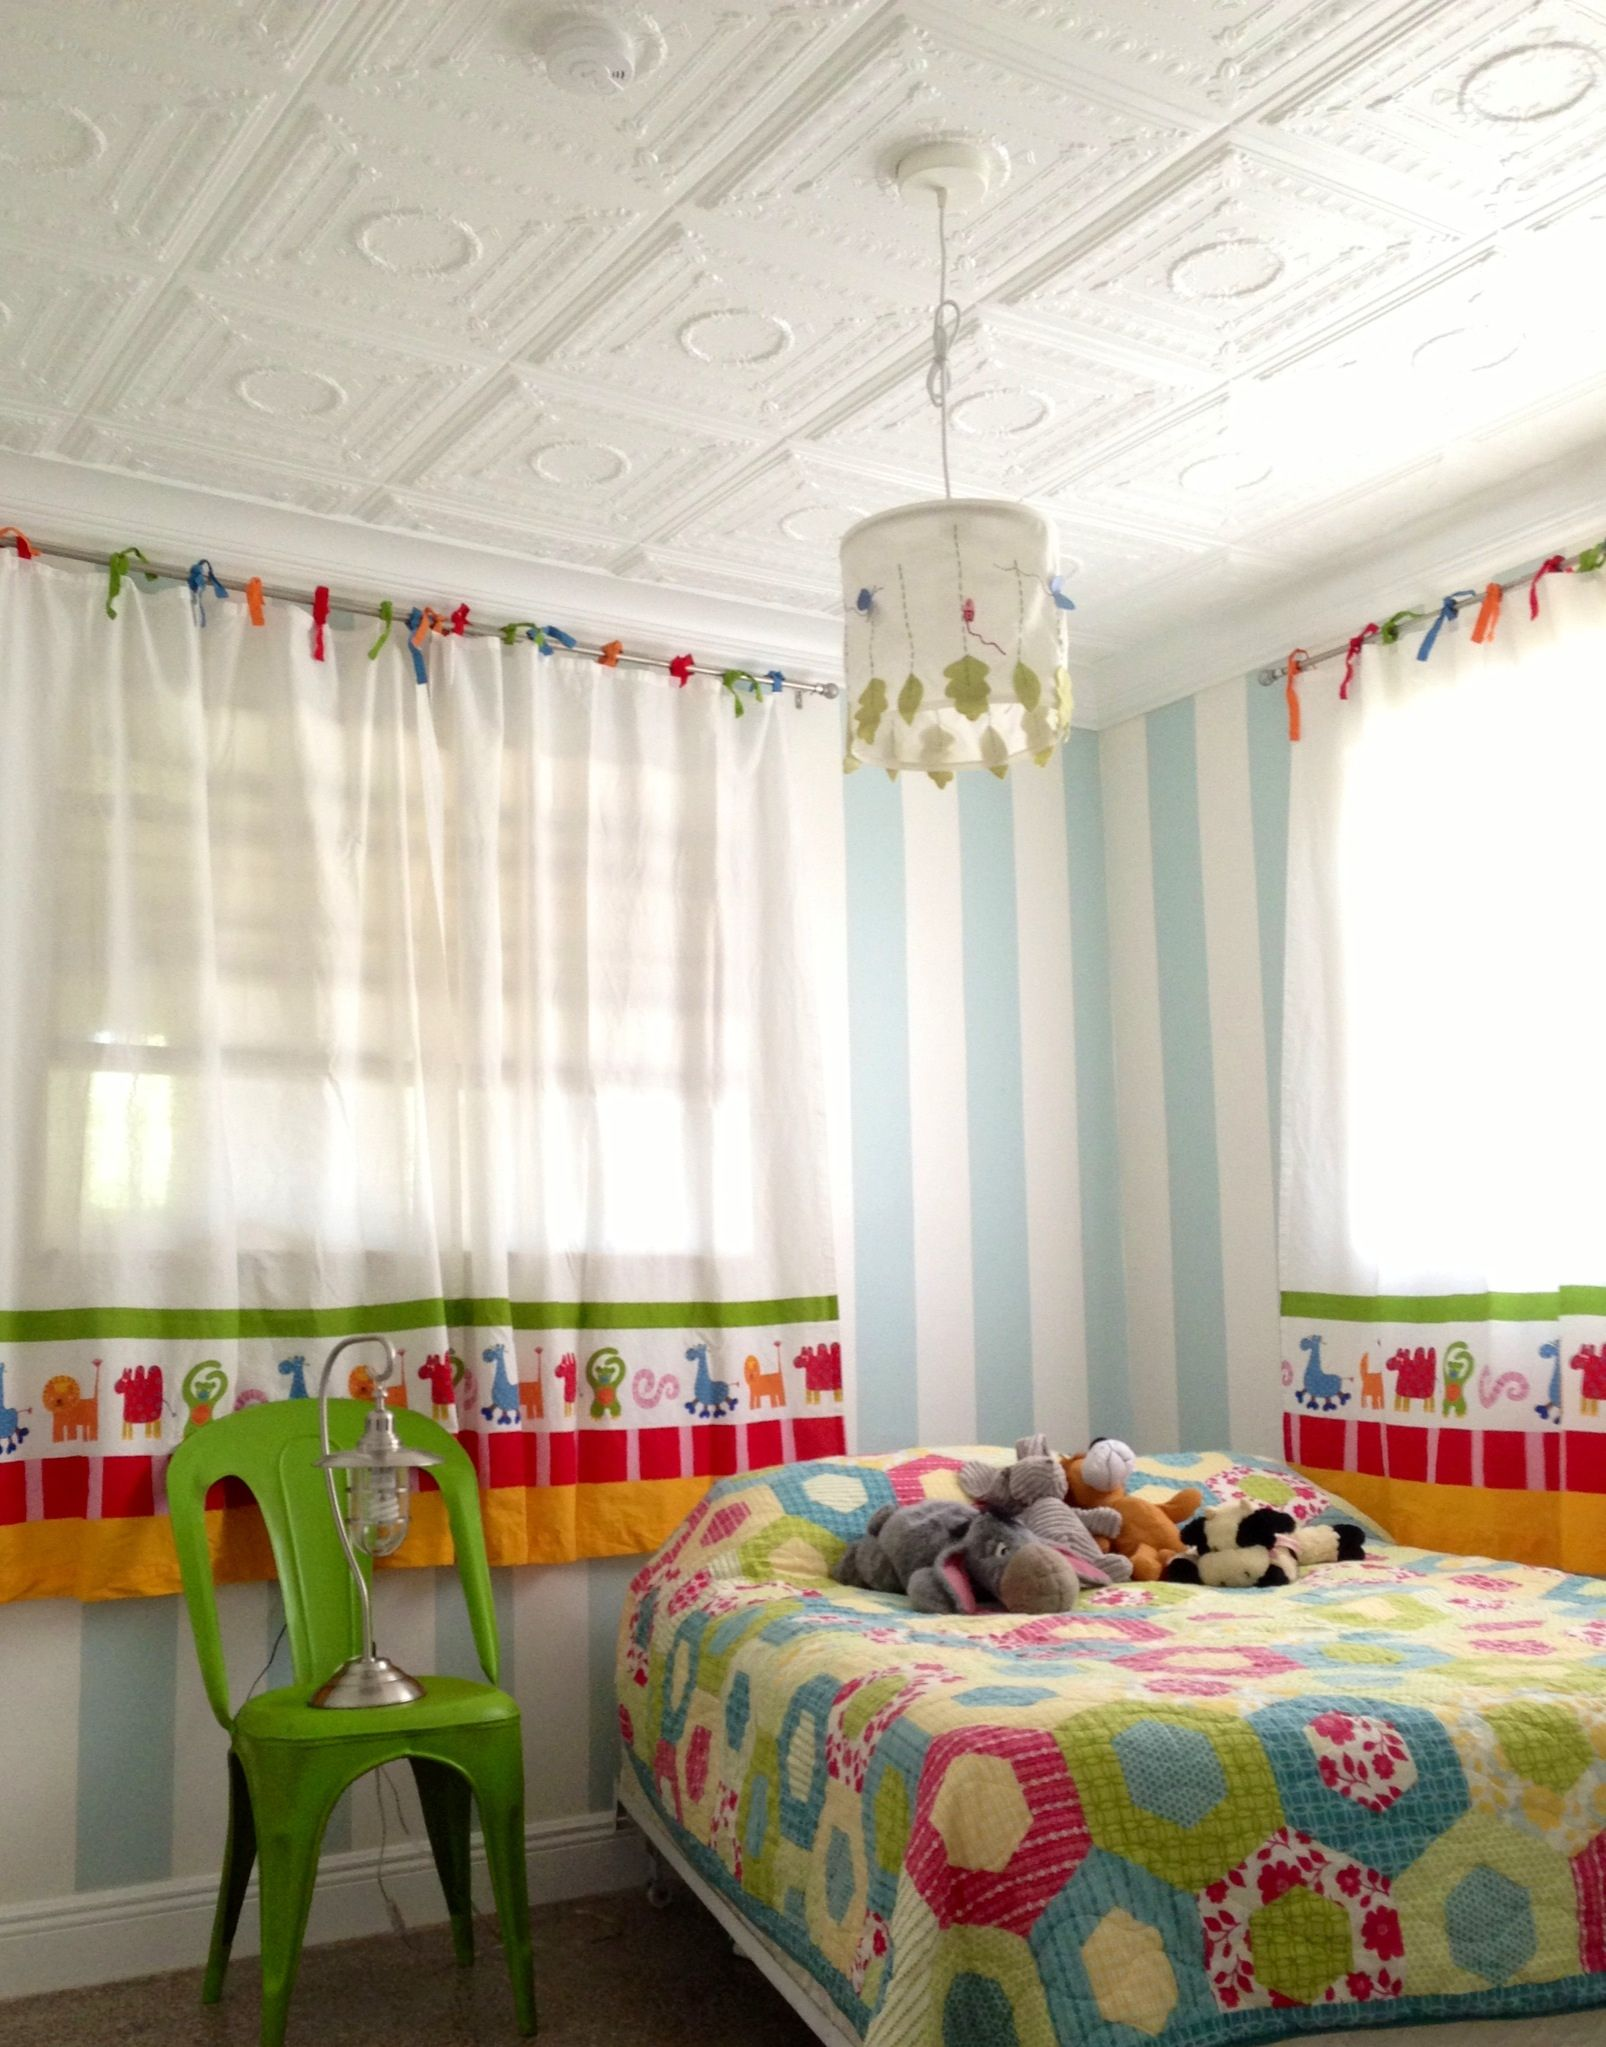 Kids bedroom with decorative ceiling tiles bedroom ideas kids bedroom with decorative ceiling tiles dailygadgetfo Images